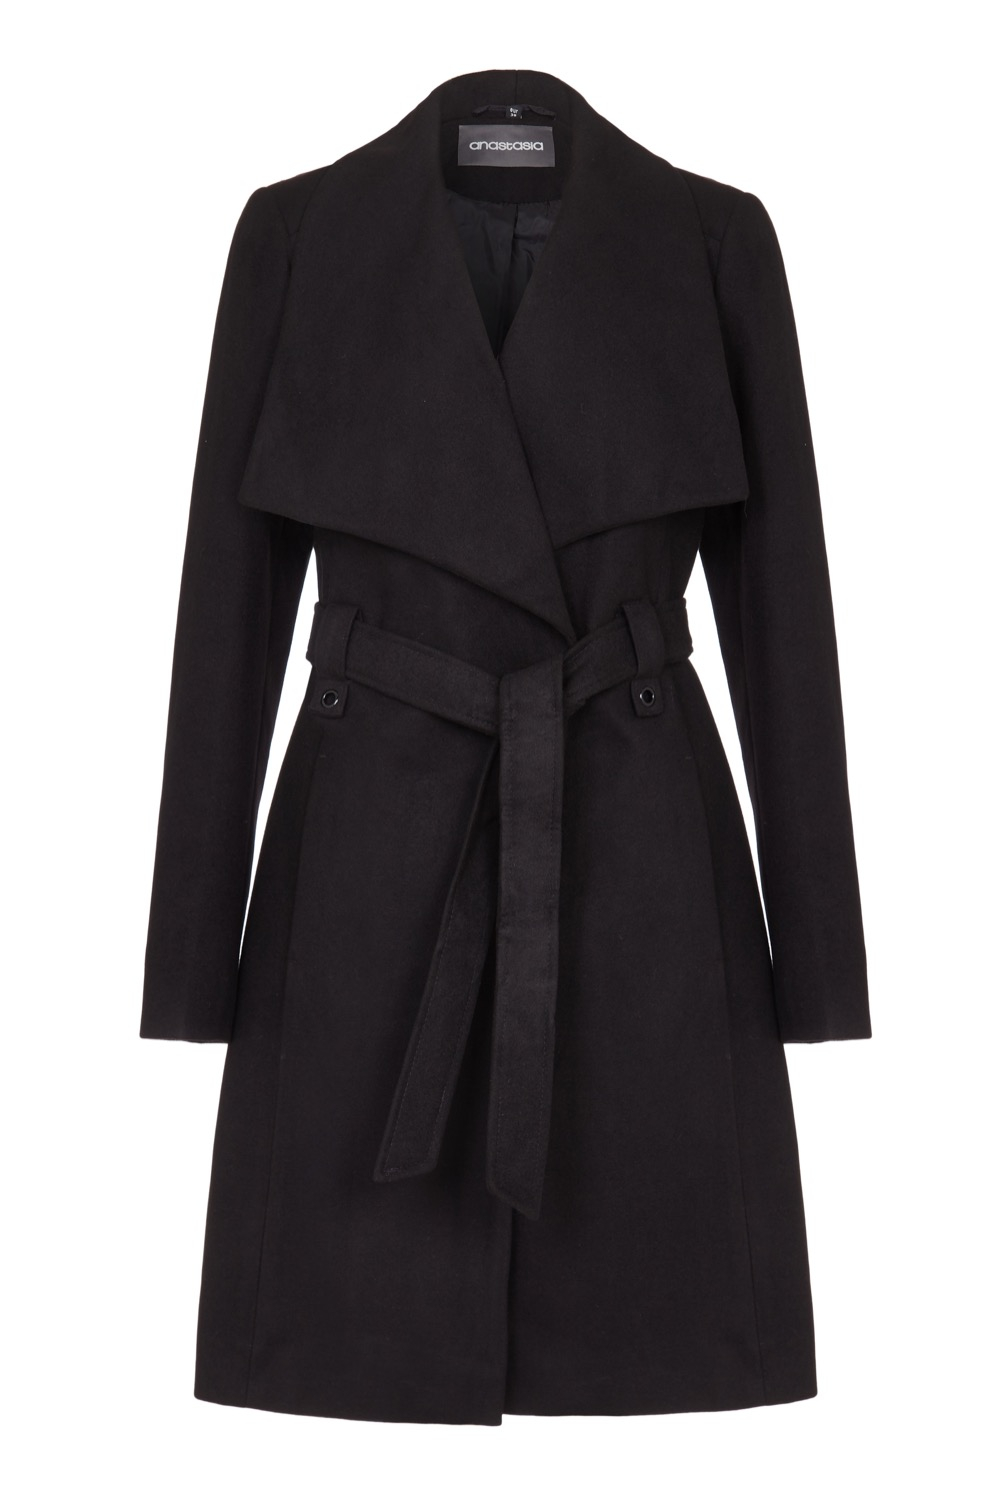 Anastasia Womens Black Large Collar Belted Wrap Winter Coat